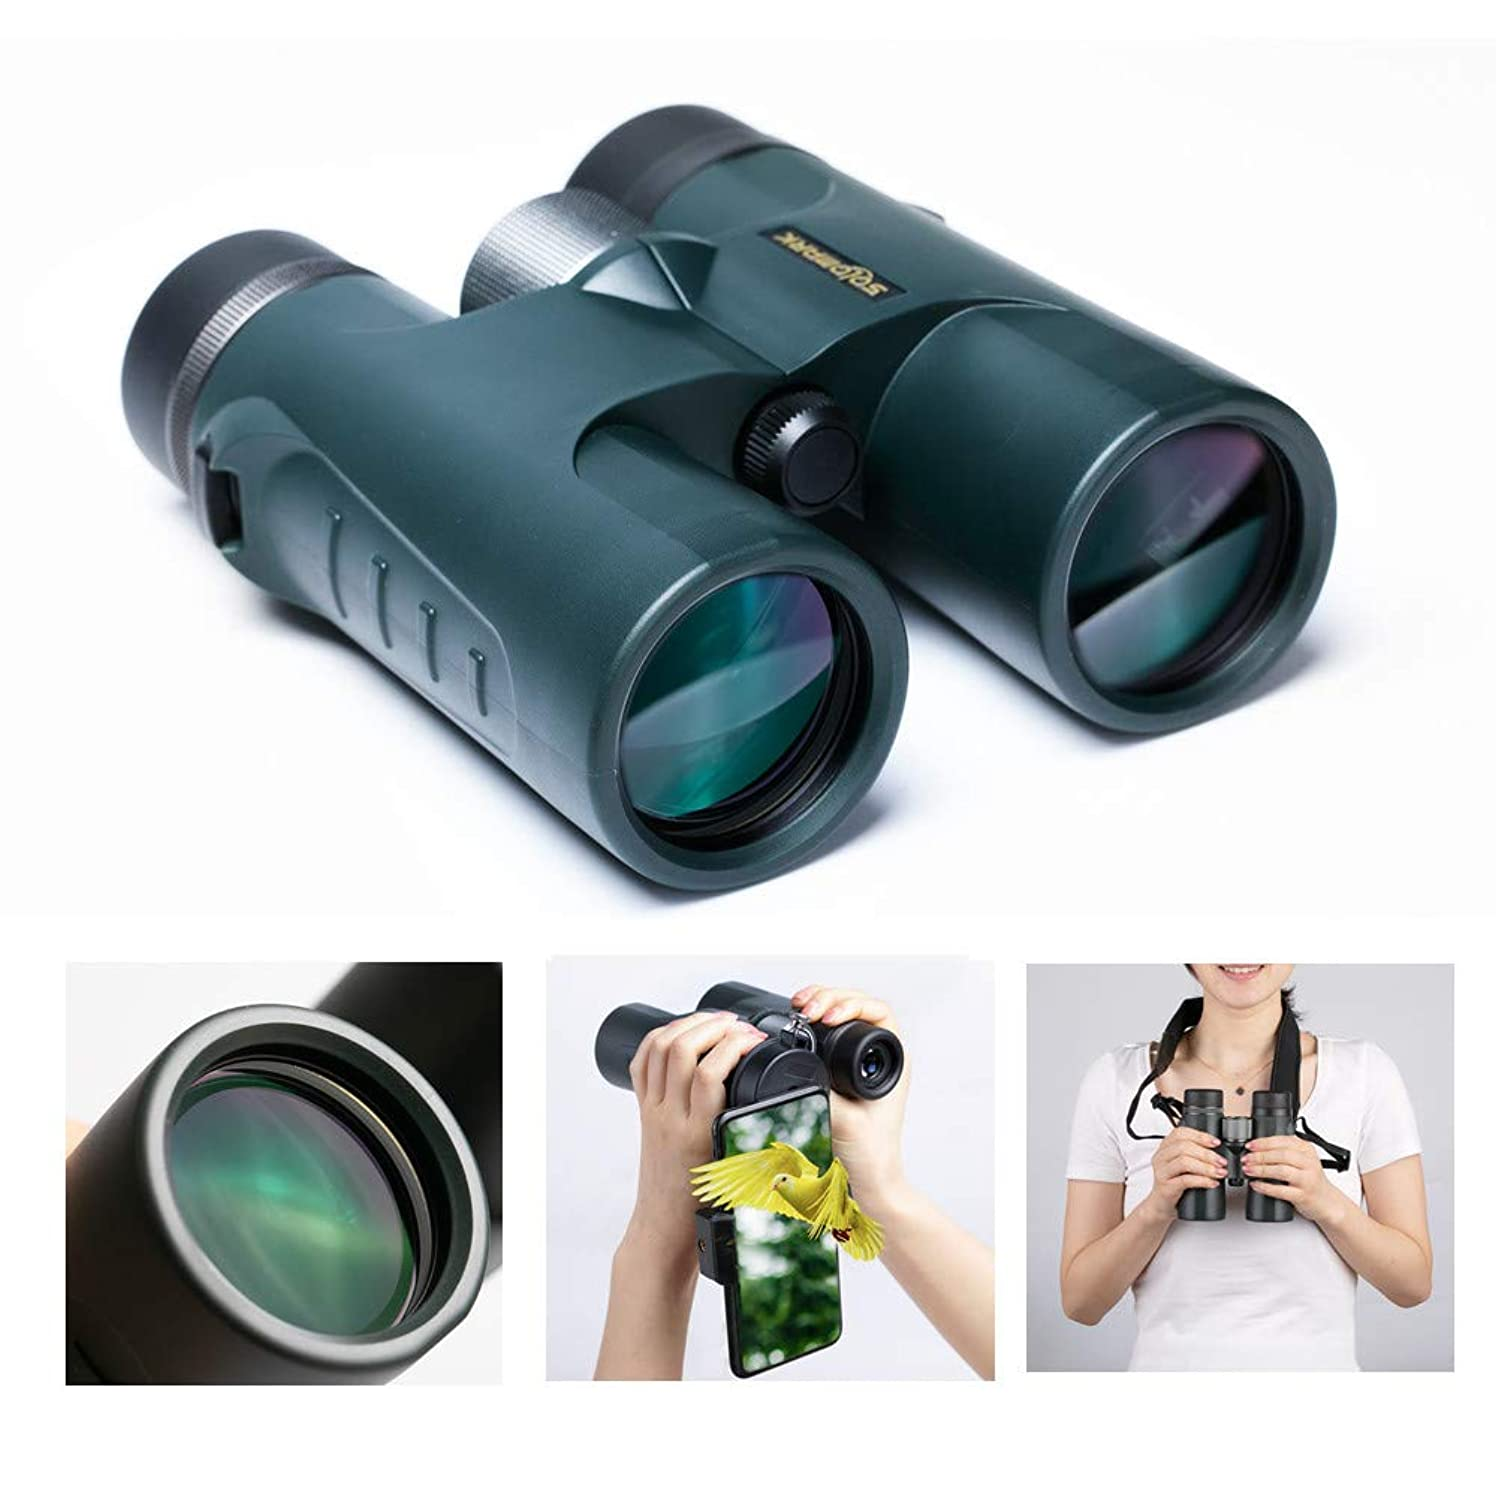 HD 10x42 Roof Prism Binoculars Waterproof for Adults Bird Watching, Large Ocular and Object Lens, Clarity Brightness and Wide Field of View-Lightweight and Compact with HD Green Films Fully MultiCoat